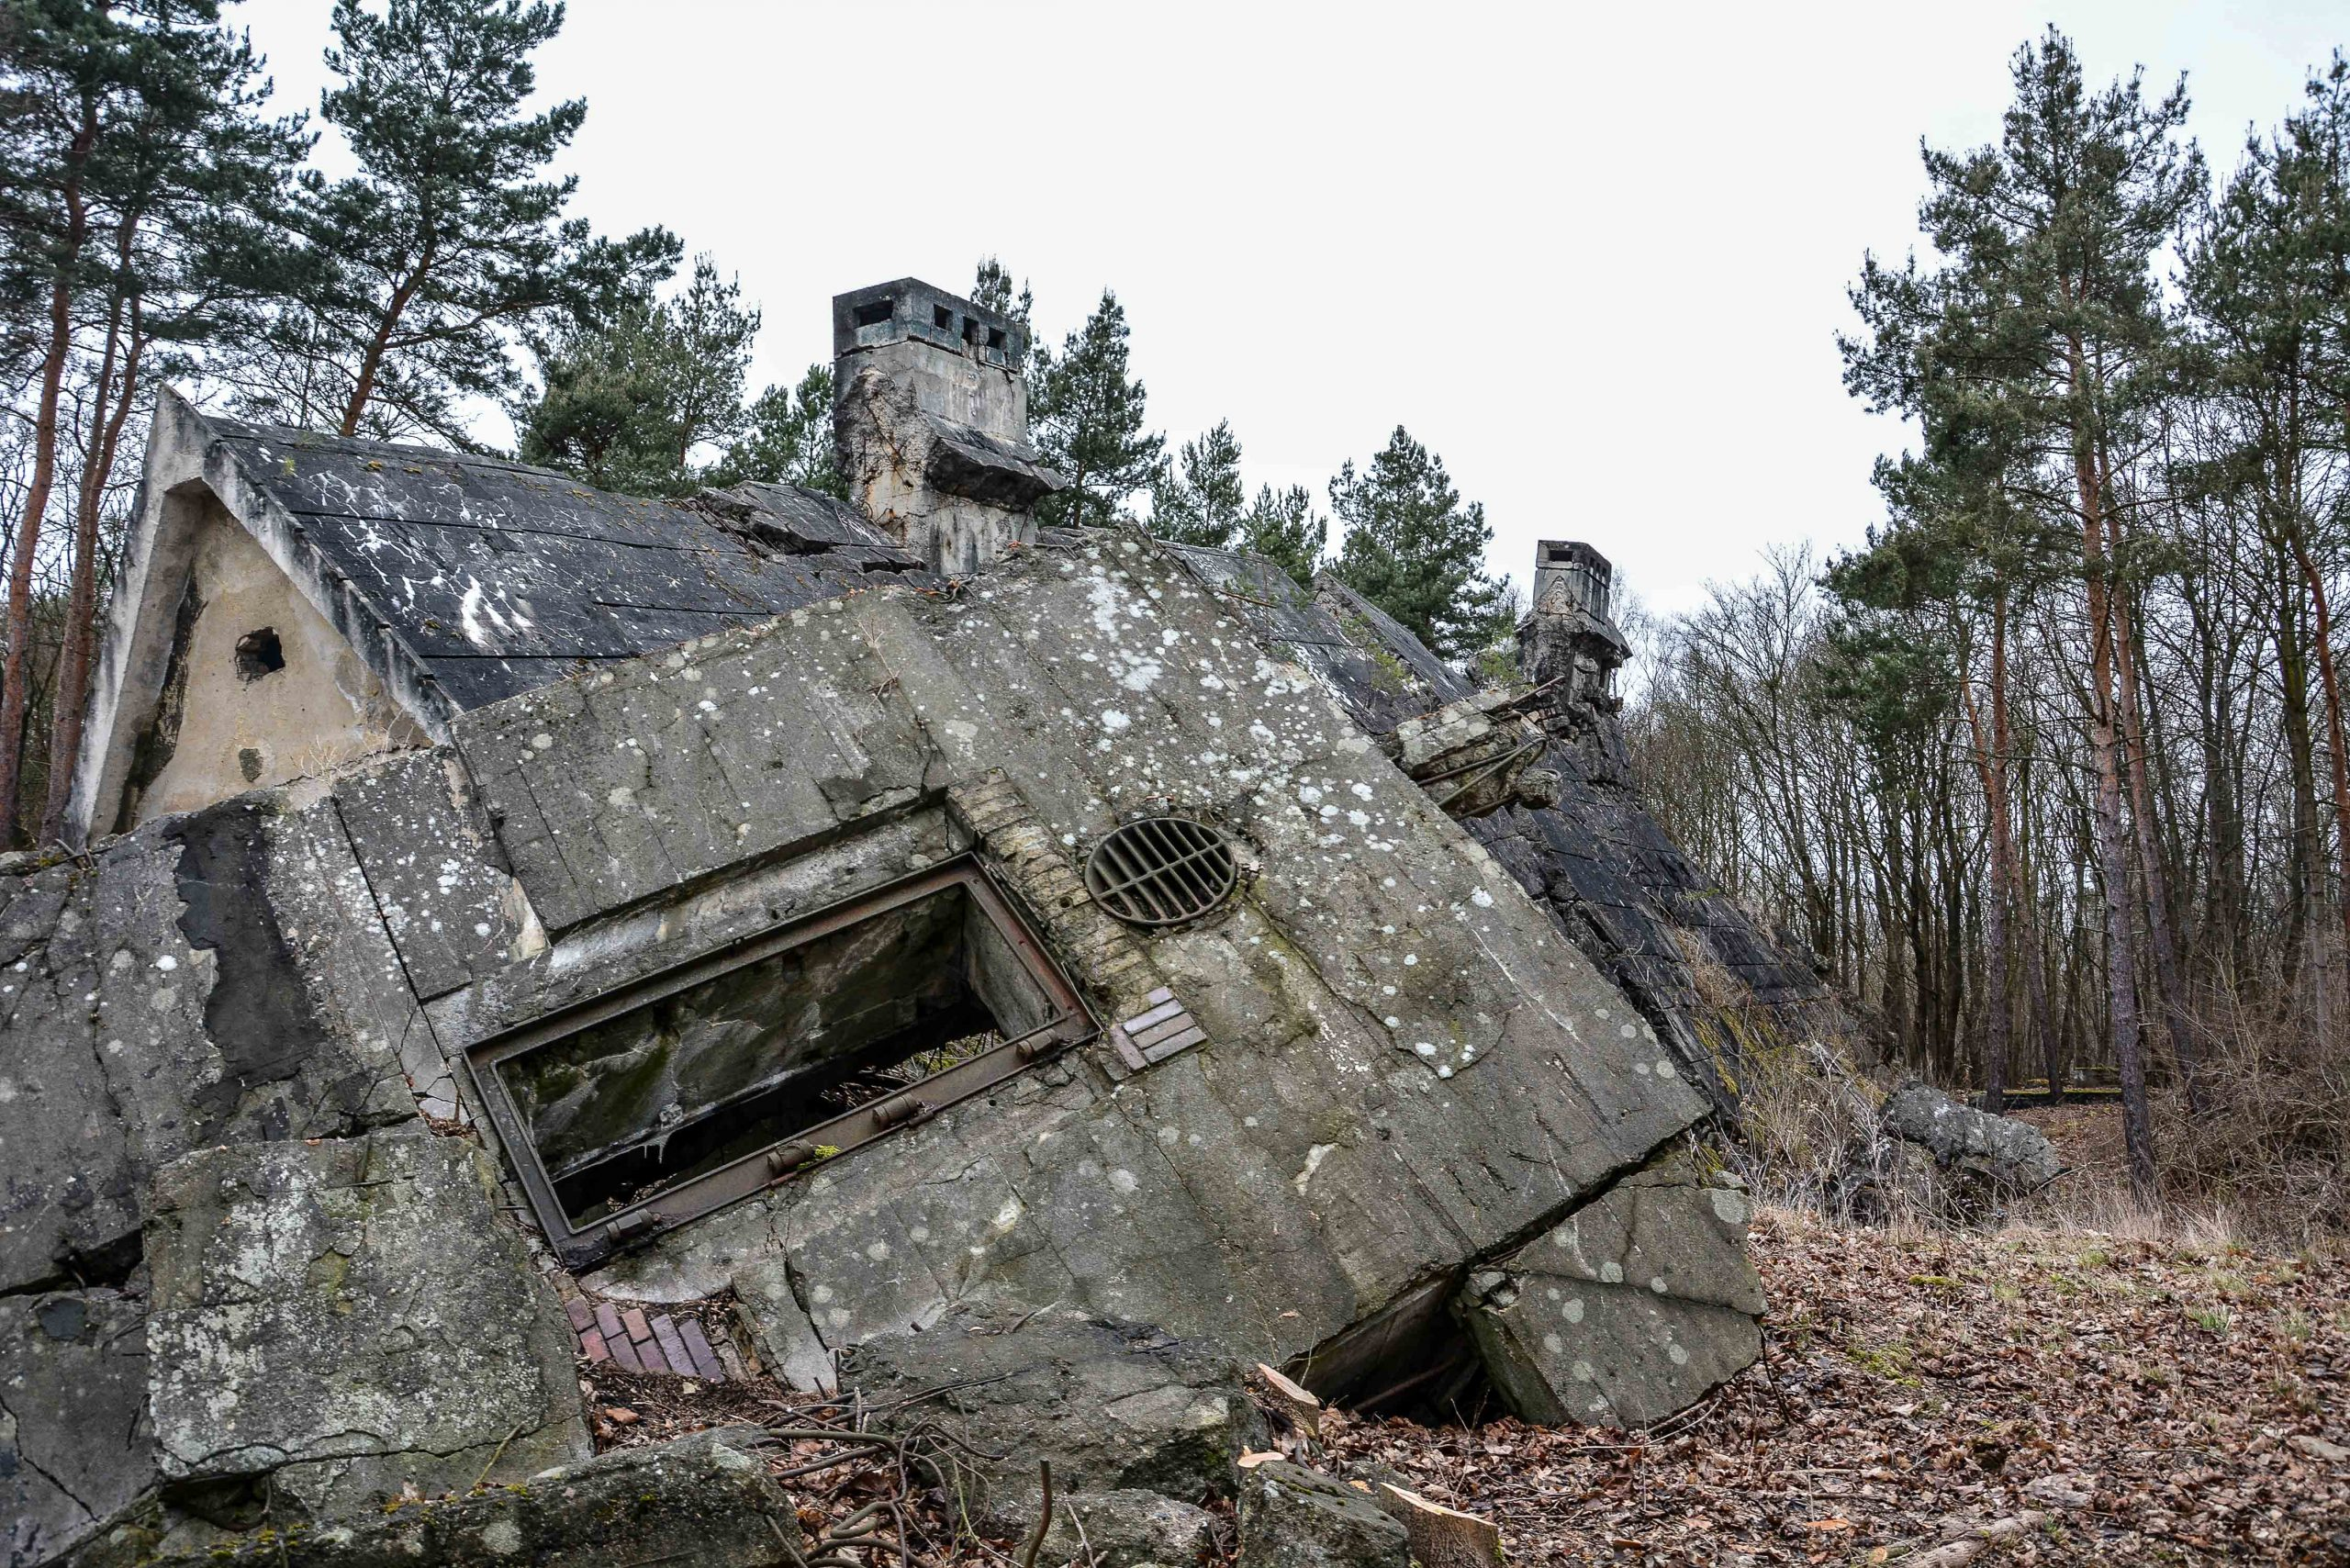 maybach I ruine tuer bunker zeppelin amt 500 maybach bunker ranet wehrmacht sowjet soviet military zossen brandenburg germany lost palces urbex abandoned